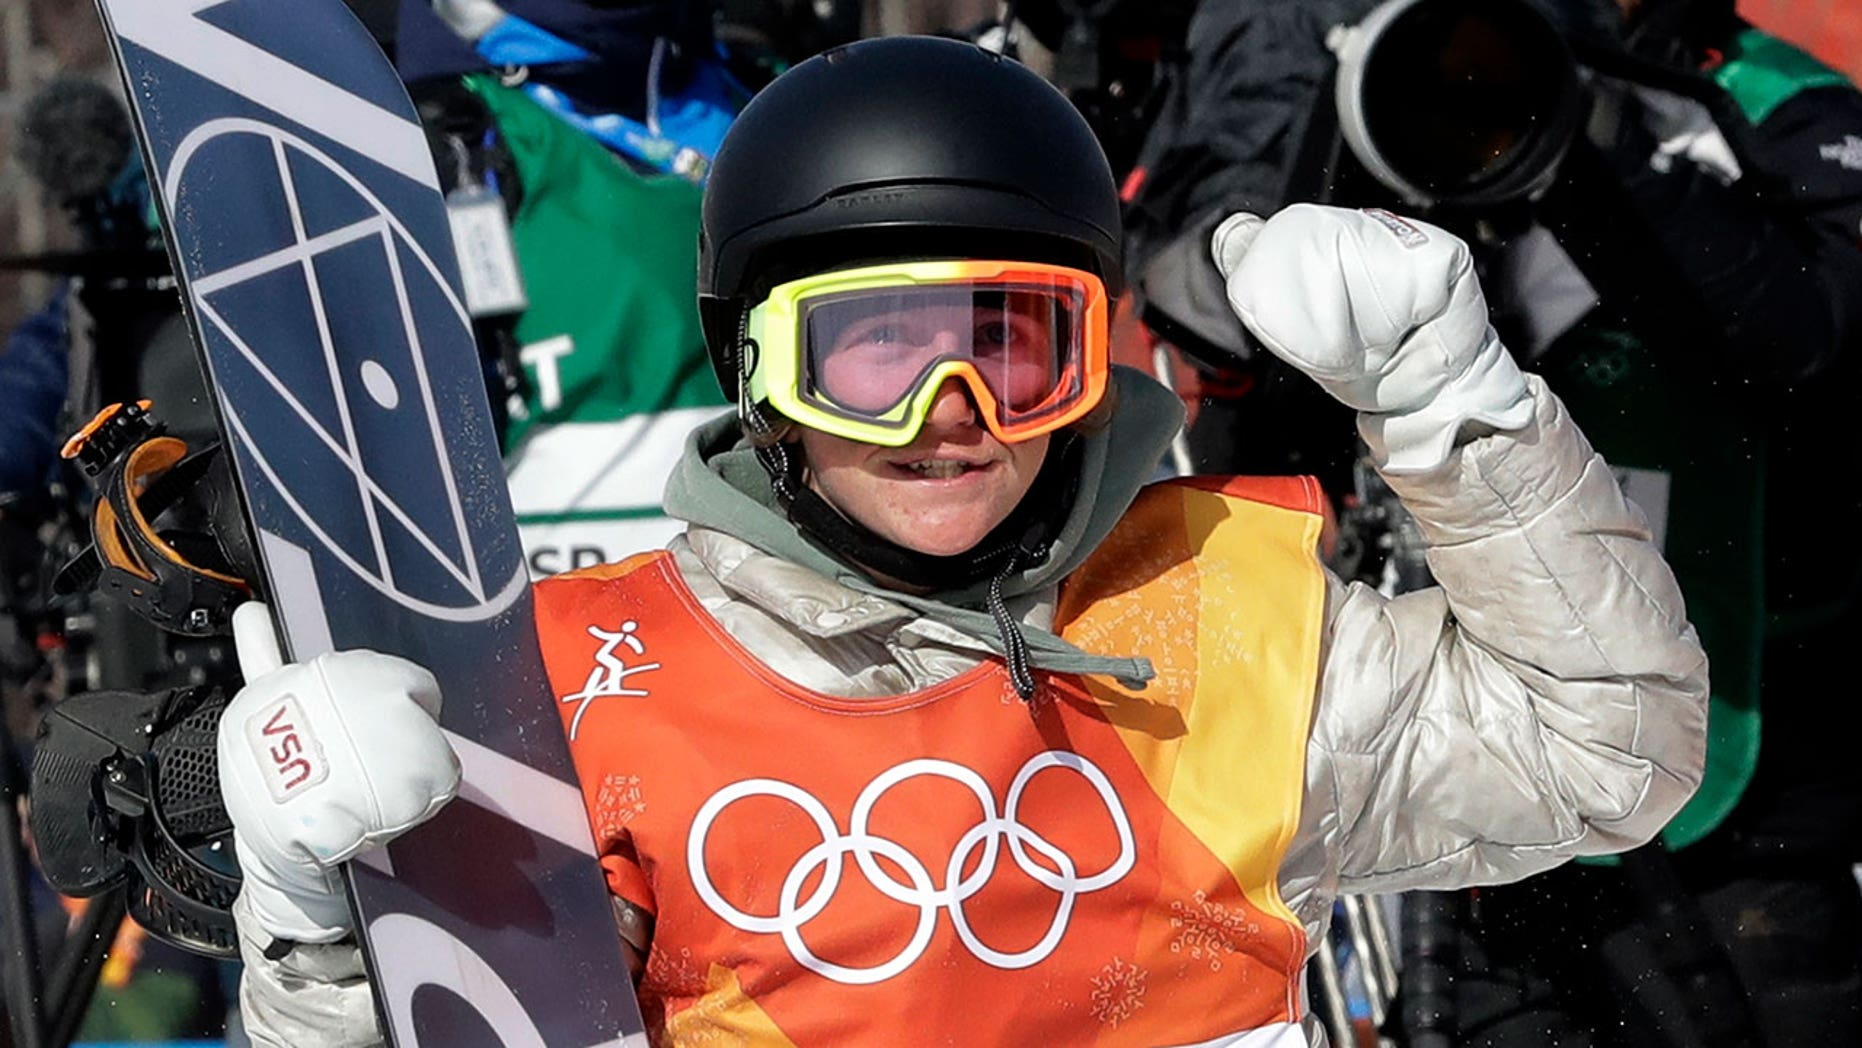 17-year-old snowboarder Red Gerard said his family was celebrating even before he won his early-morning snowboarding event.